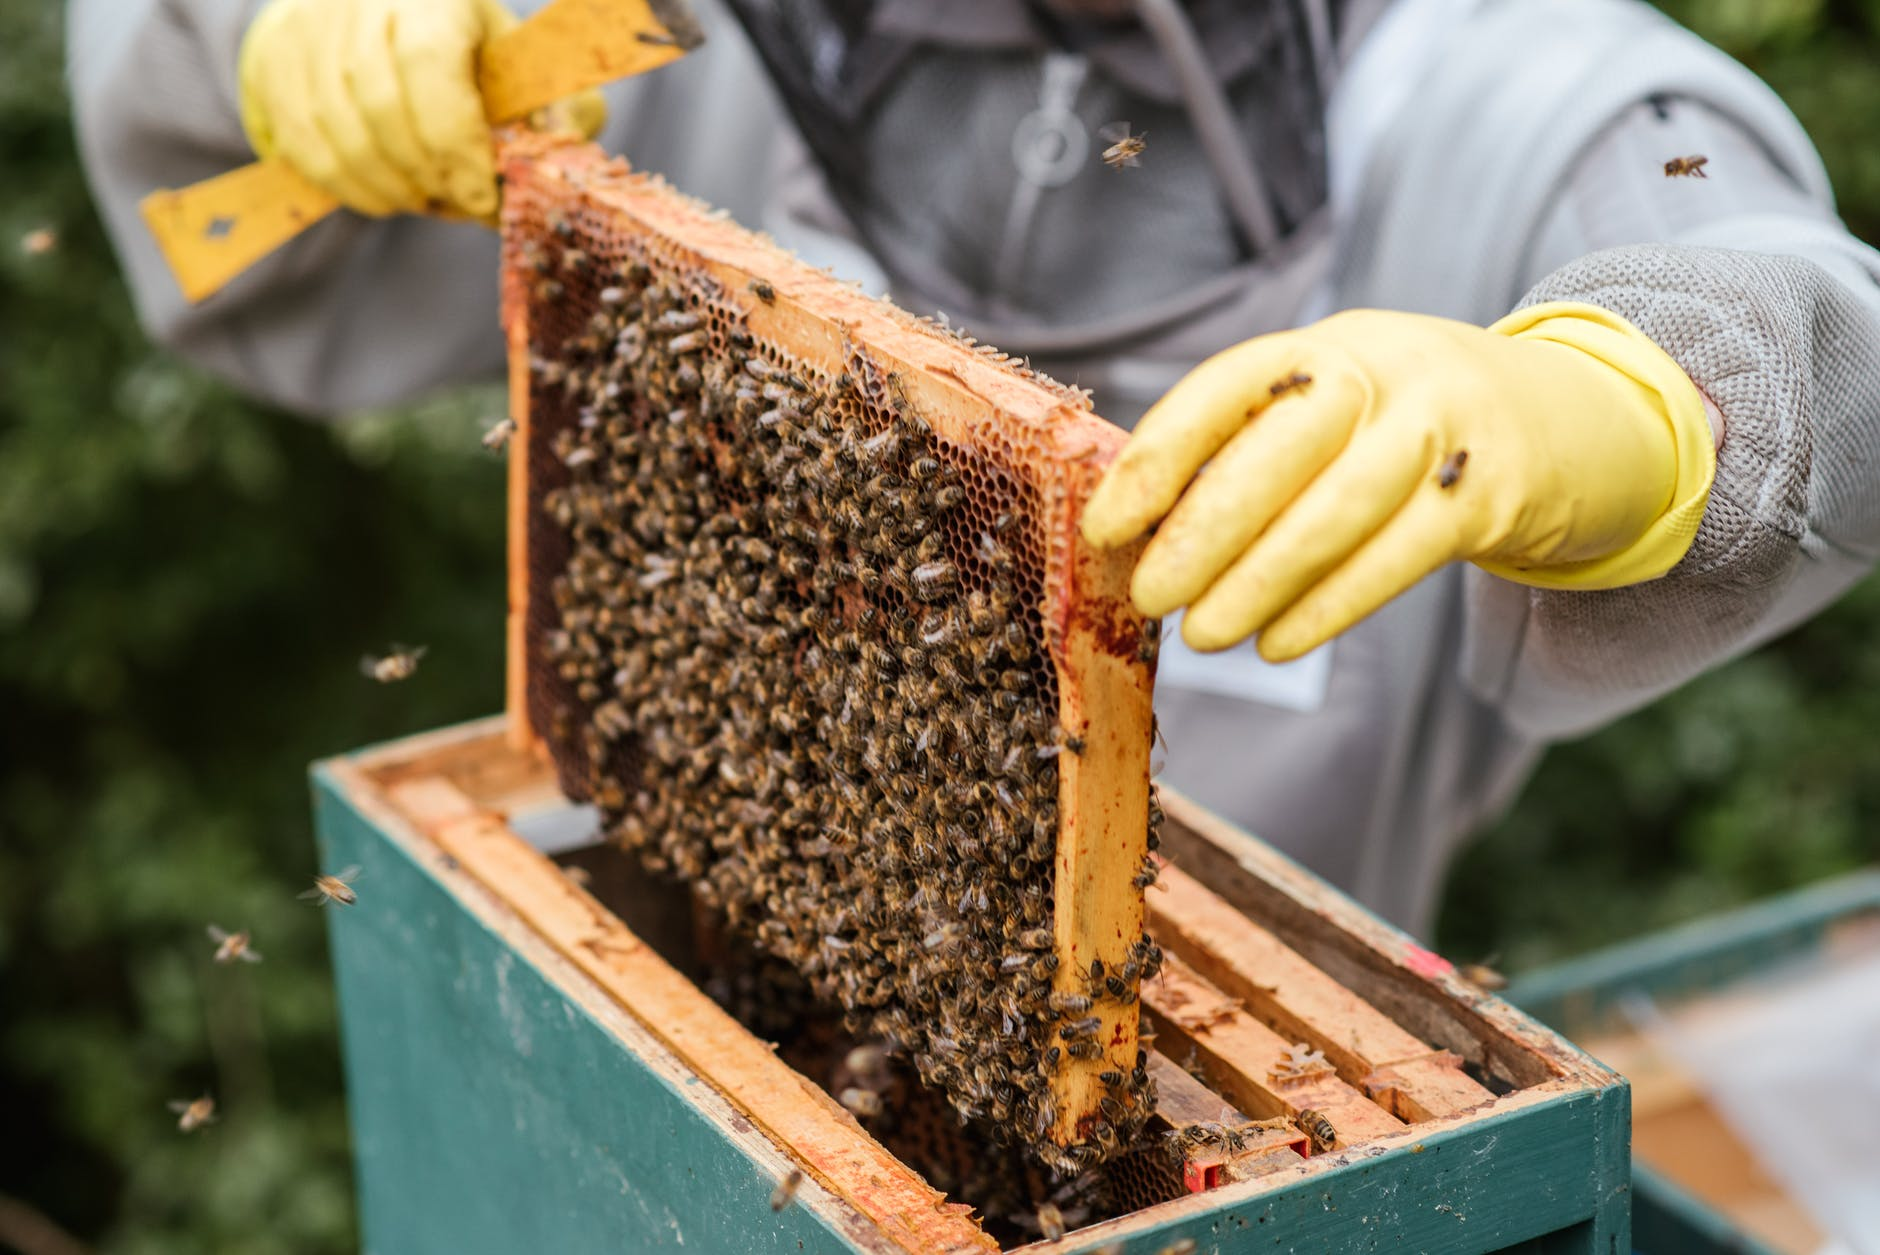 crop farmer taking honeycomb from beehive